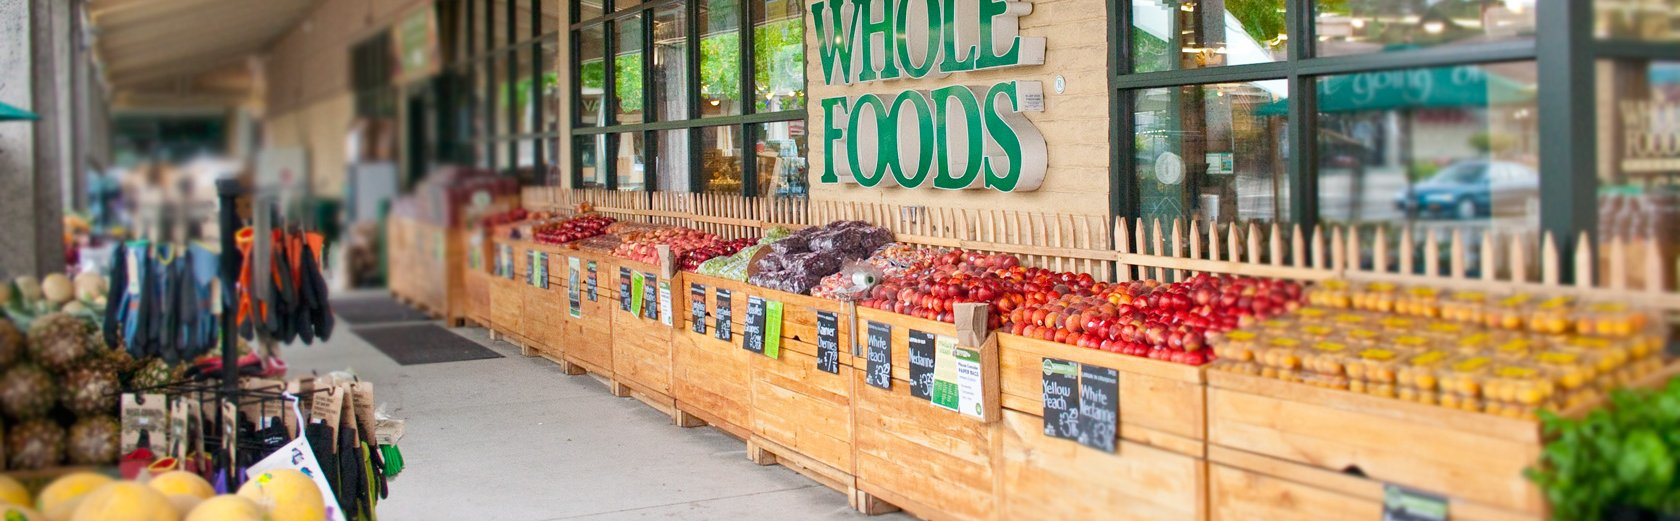 Amazon compra Whole Foods por 13.700 millones de dólares